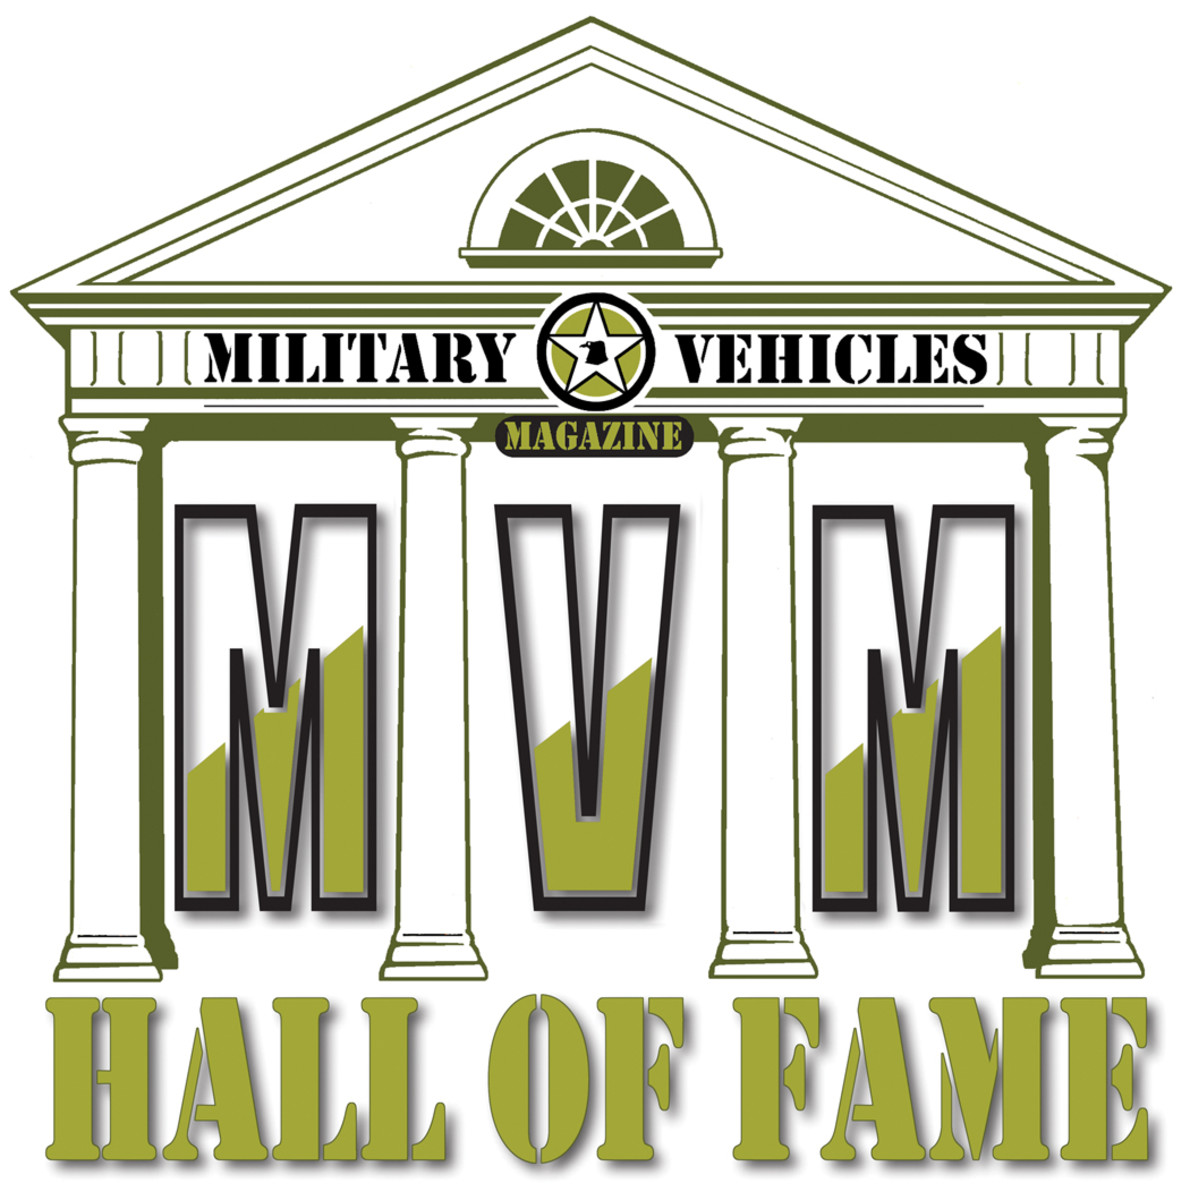 Military Vehicle Hall of Fame logo